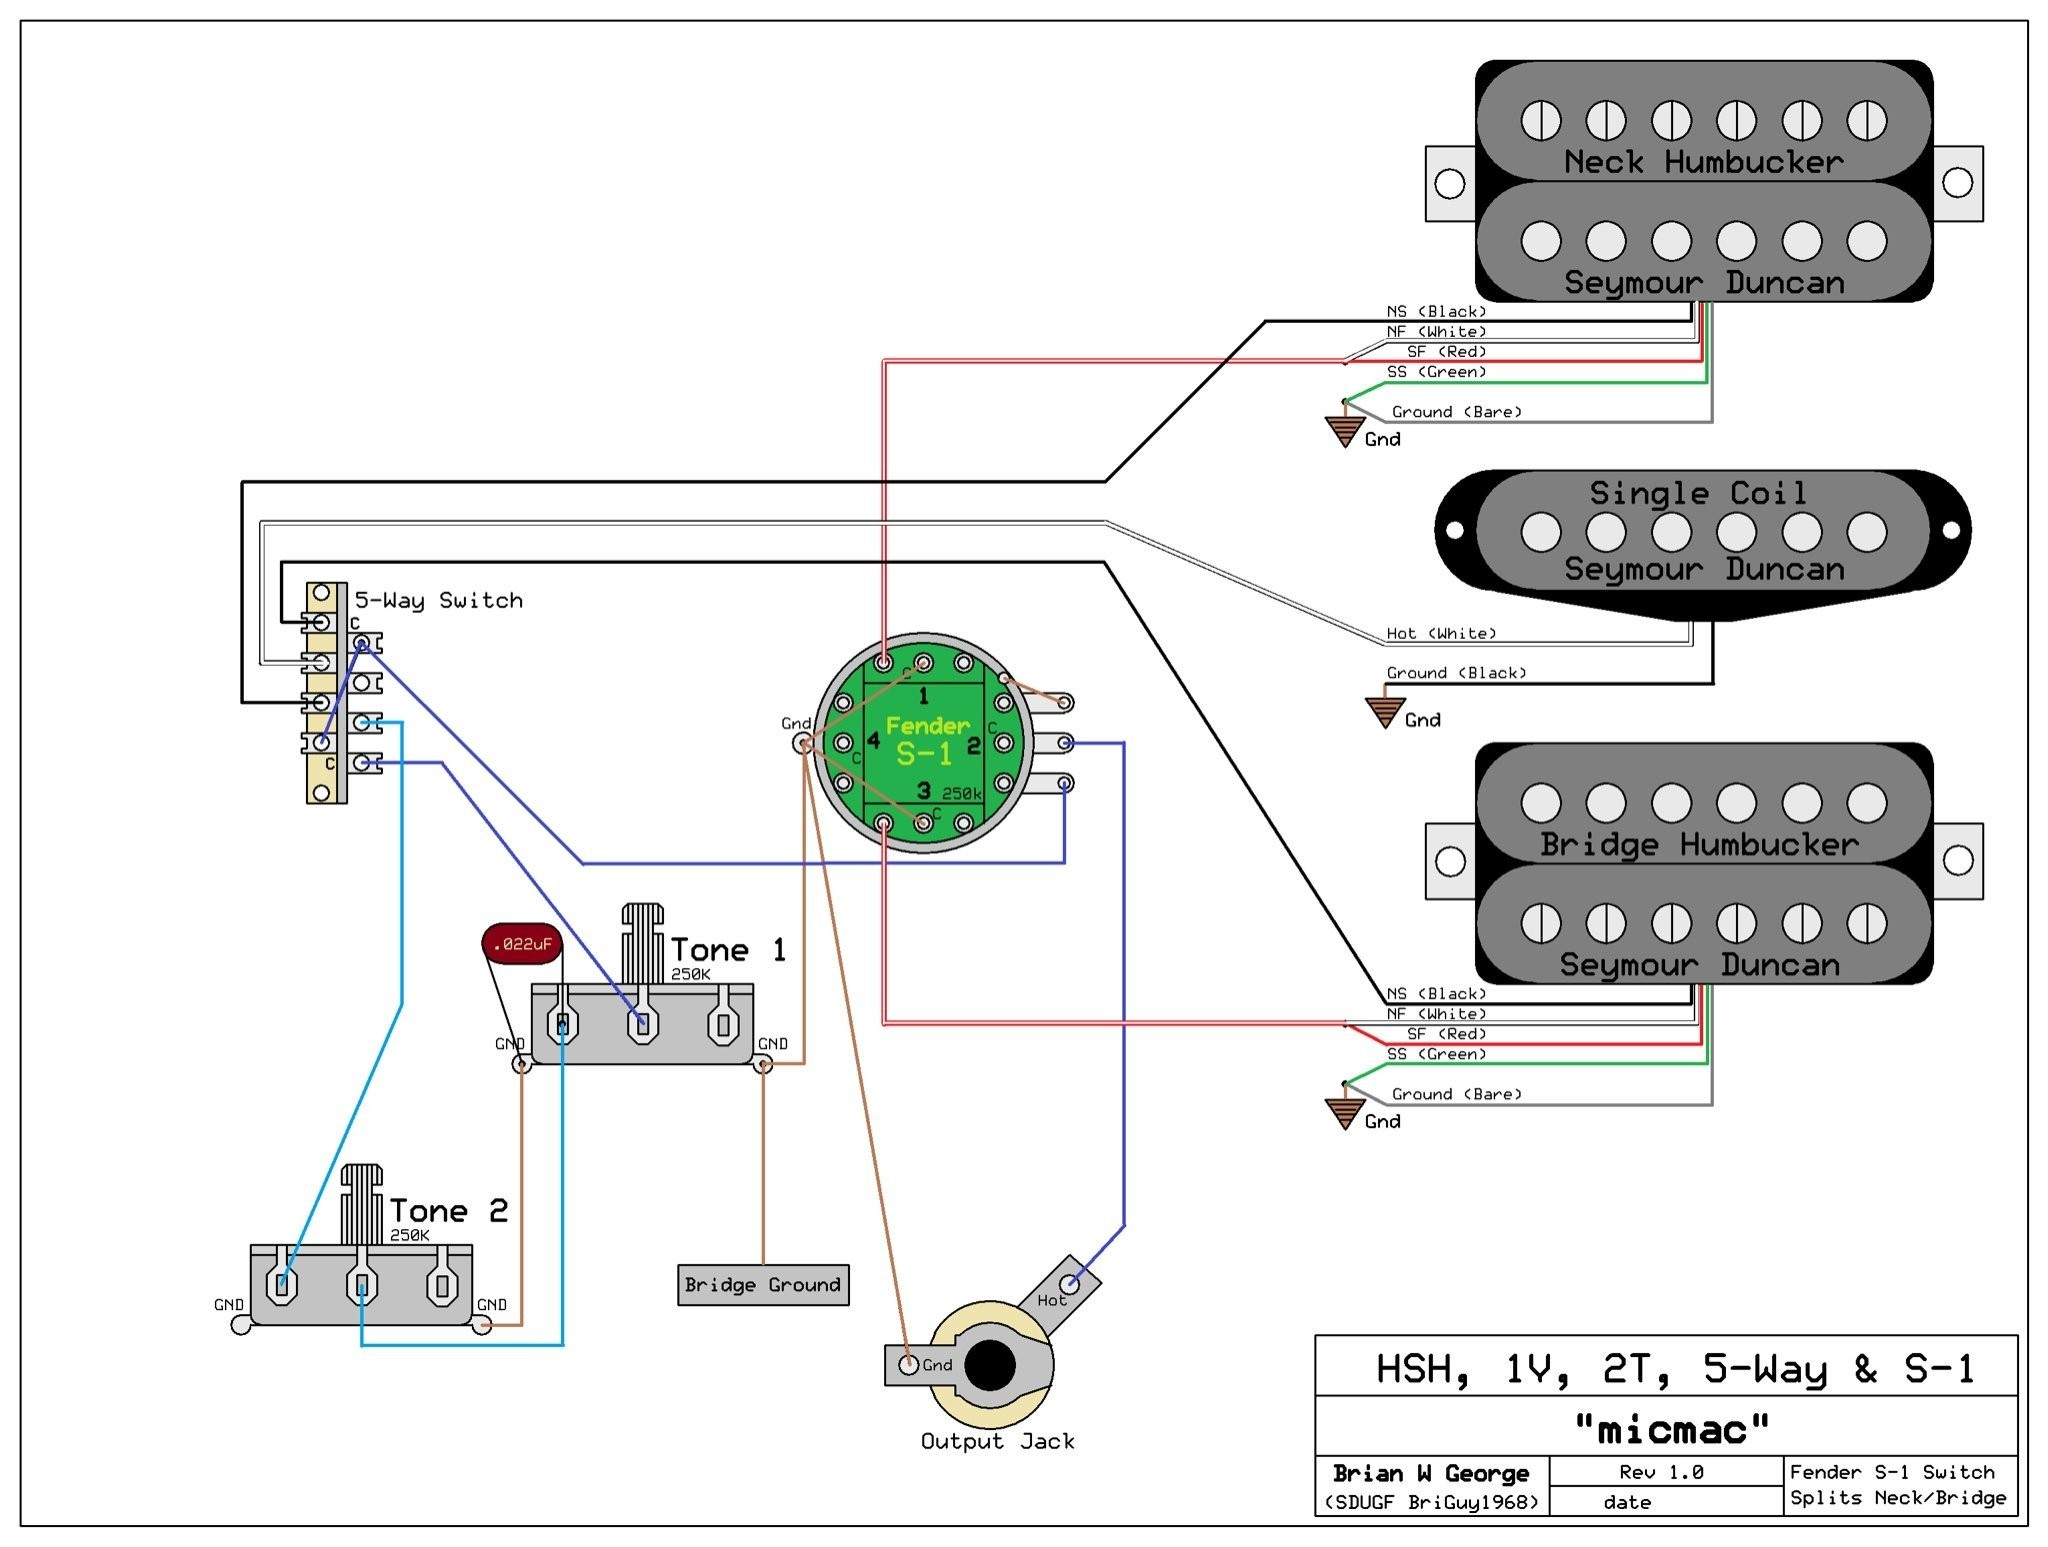 Fender S-1 Switch Wiring Diagram Lk 6405] Fender Lace Sensor Wiring Wiring Diagram Of Fender S-1 Switch Wiring Diagram